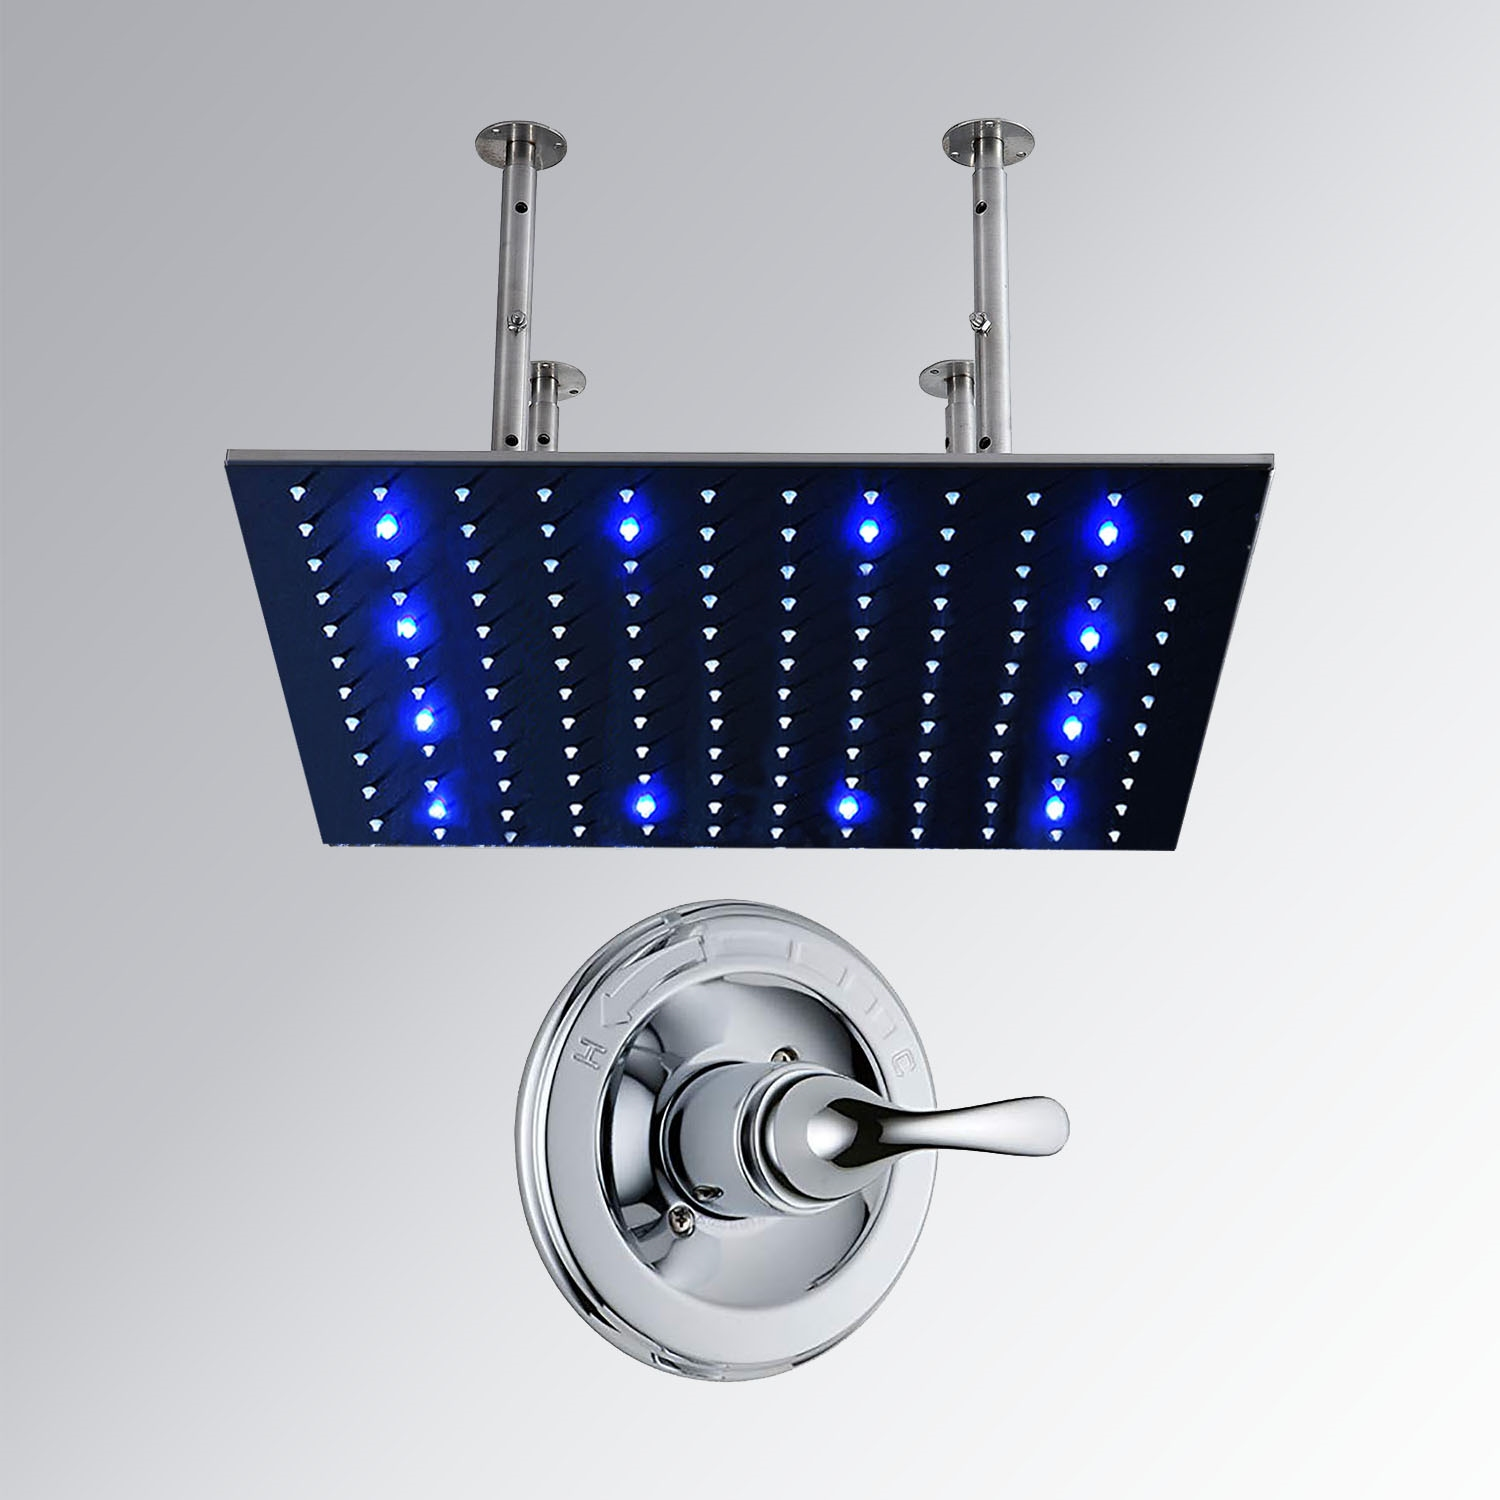 Fontana Color Changing Led Rain Shower Head Solid Br With Built In Mixer